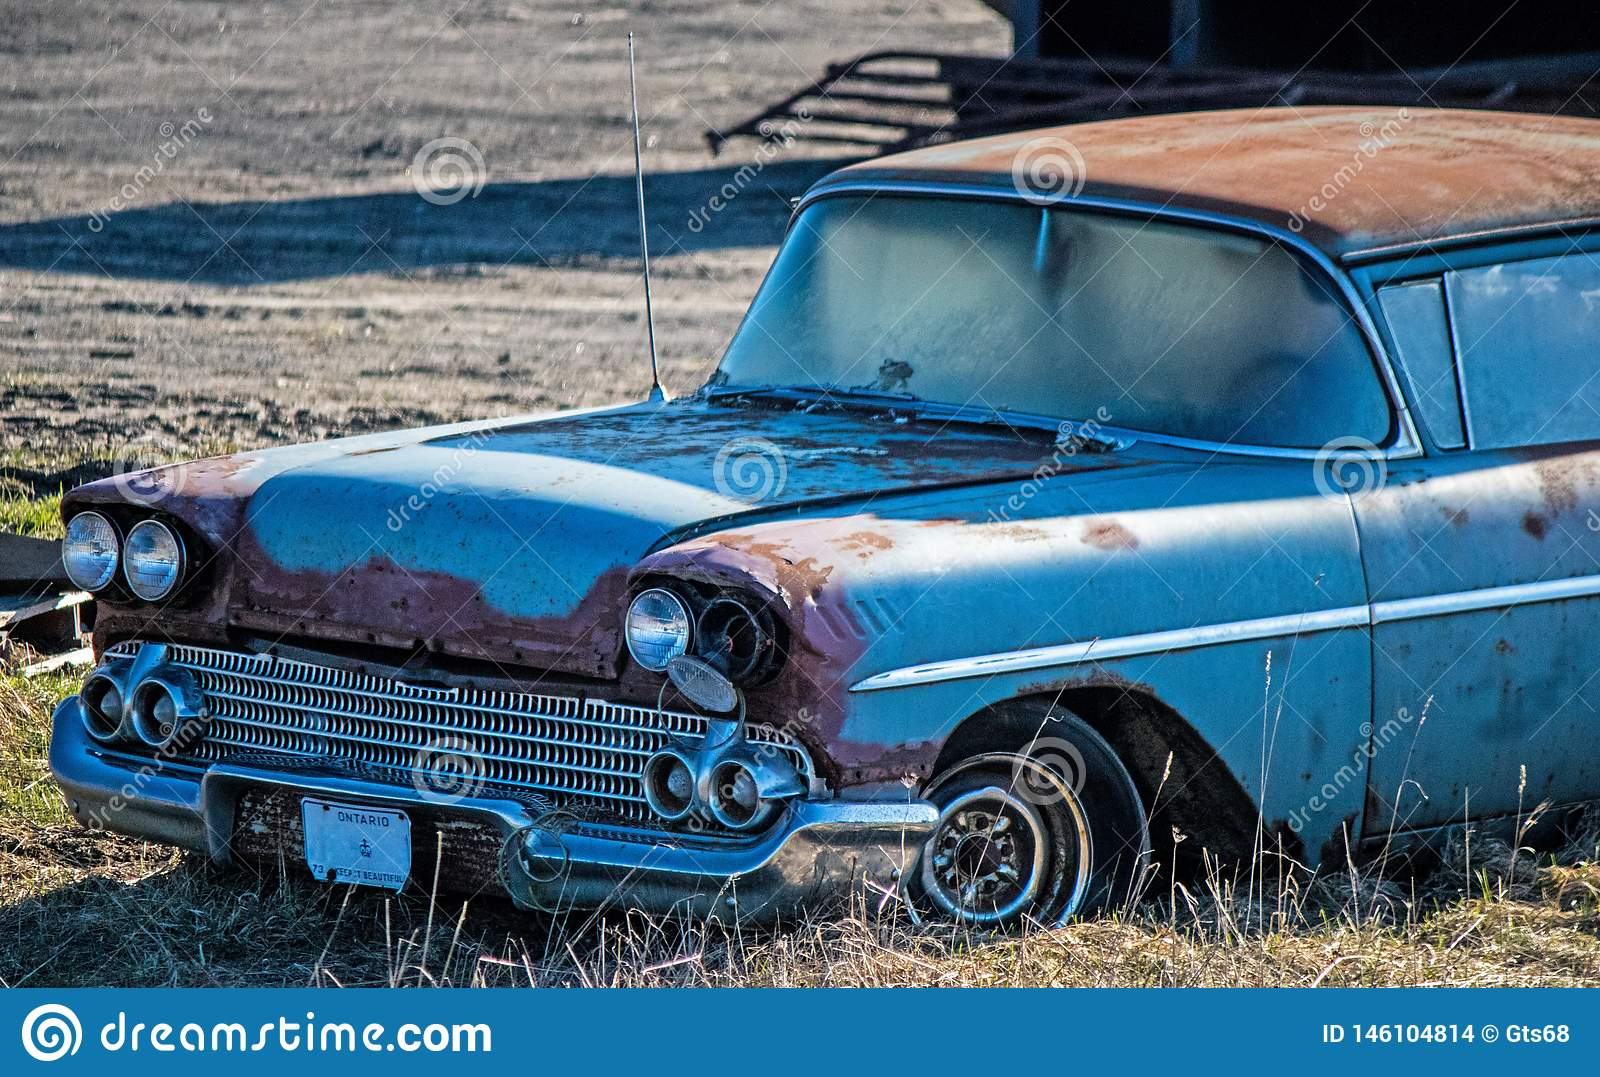 1950 S Chevrolet Delray Sitting At The Junkyard Stock Photo Image Of Days Tire 146104814